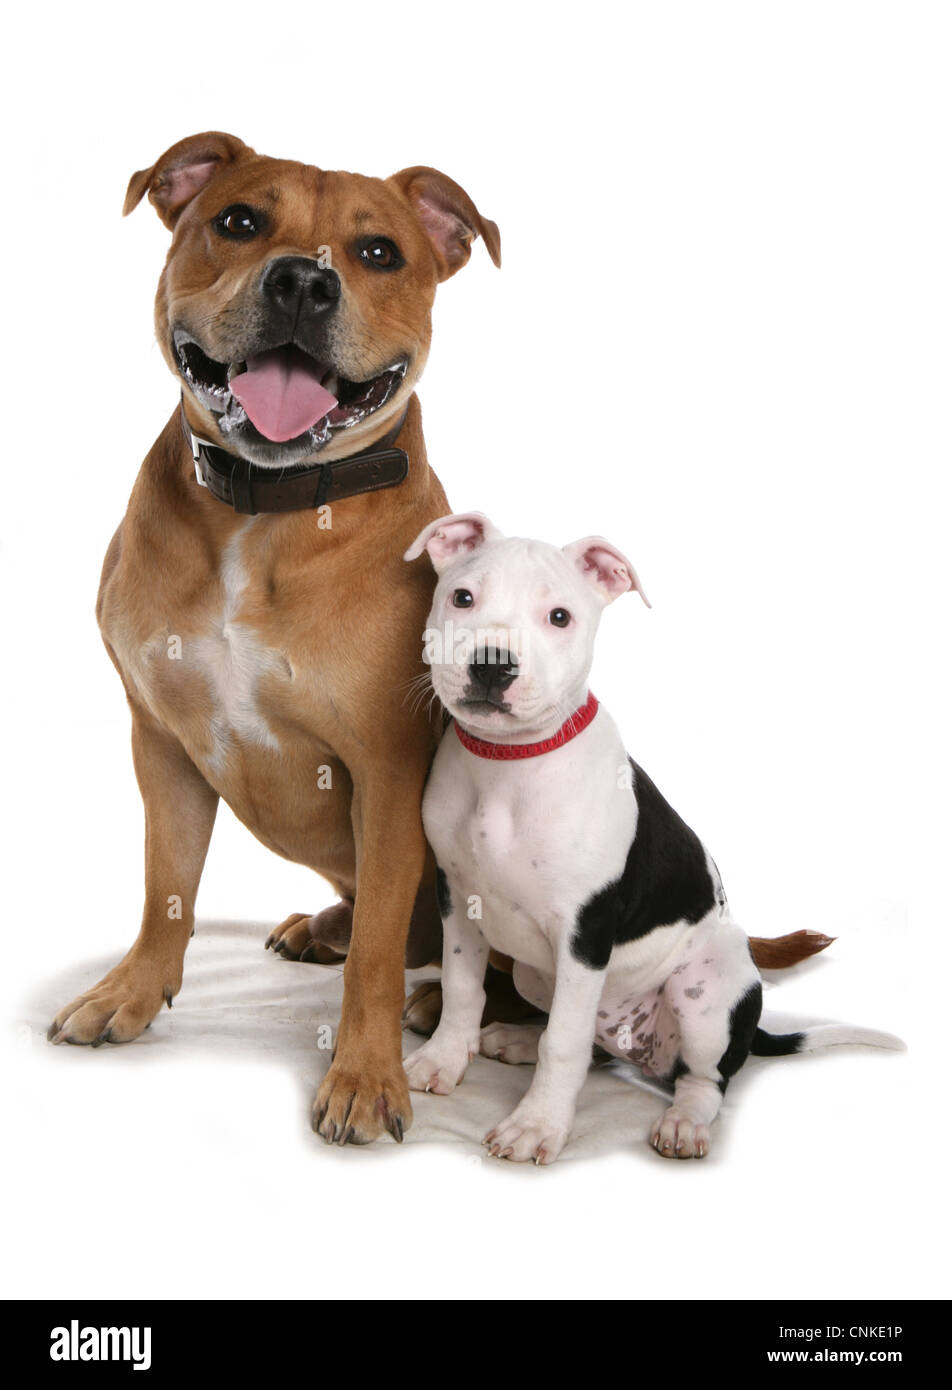 Domestic Dog, Staffordshire Bull Terrier, adult male and puppy, sitting, with collars - Stock Image